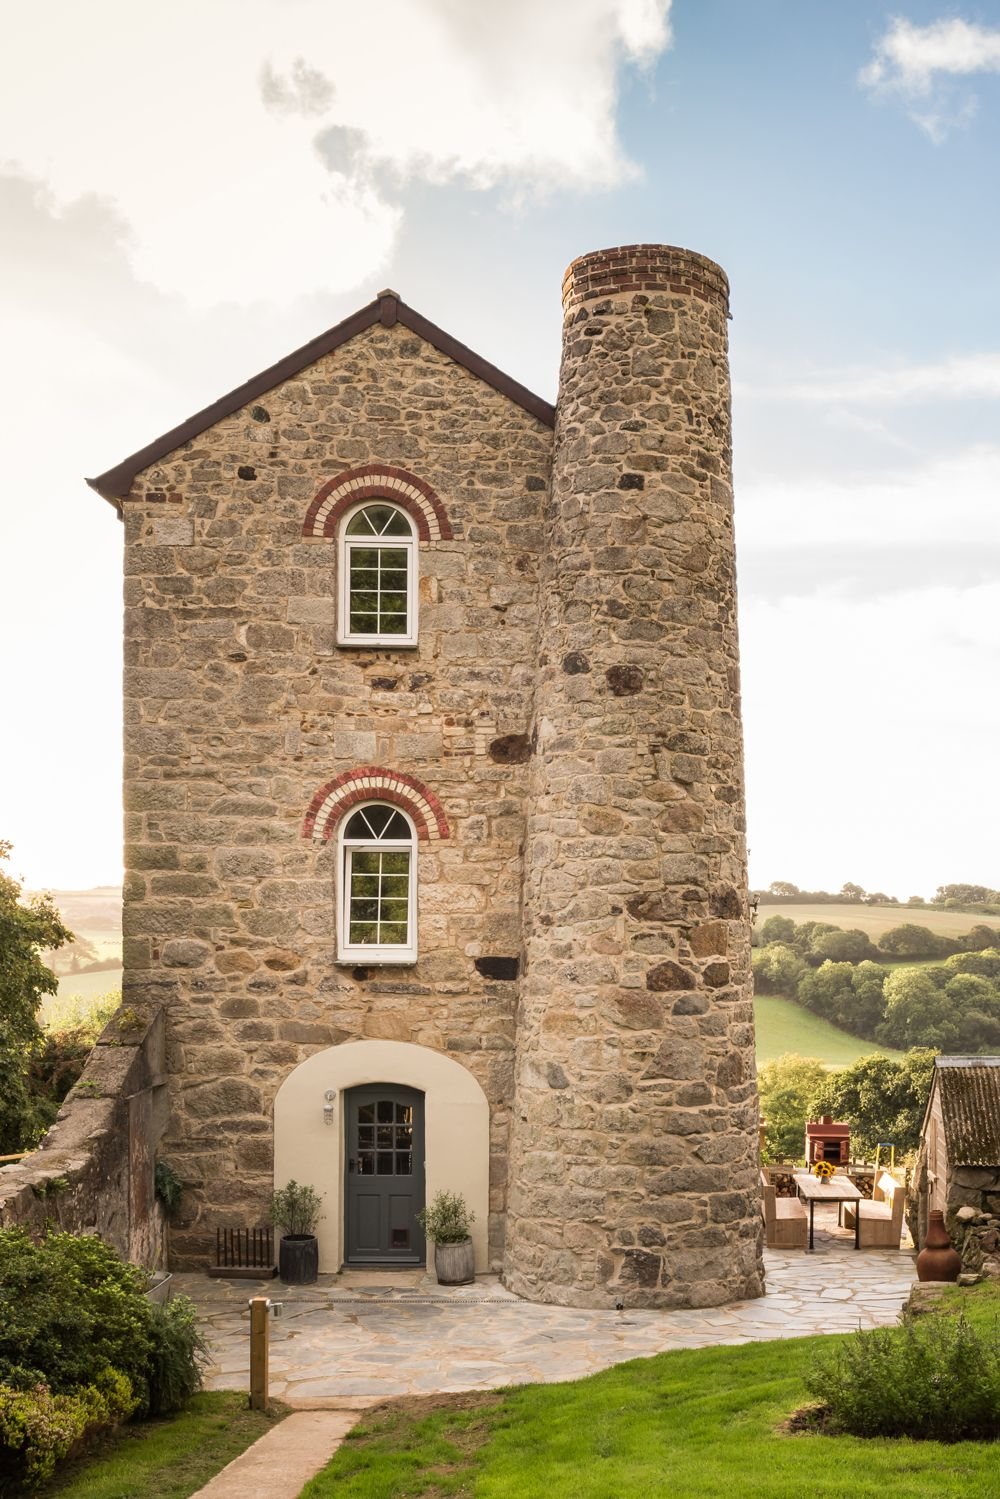 Explore a converted 19th century engine house in Cornwall